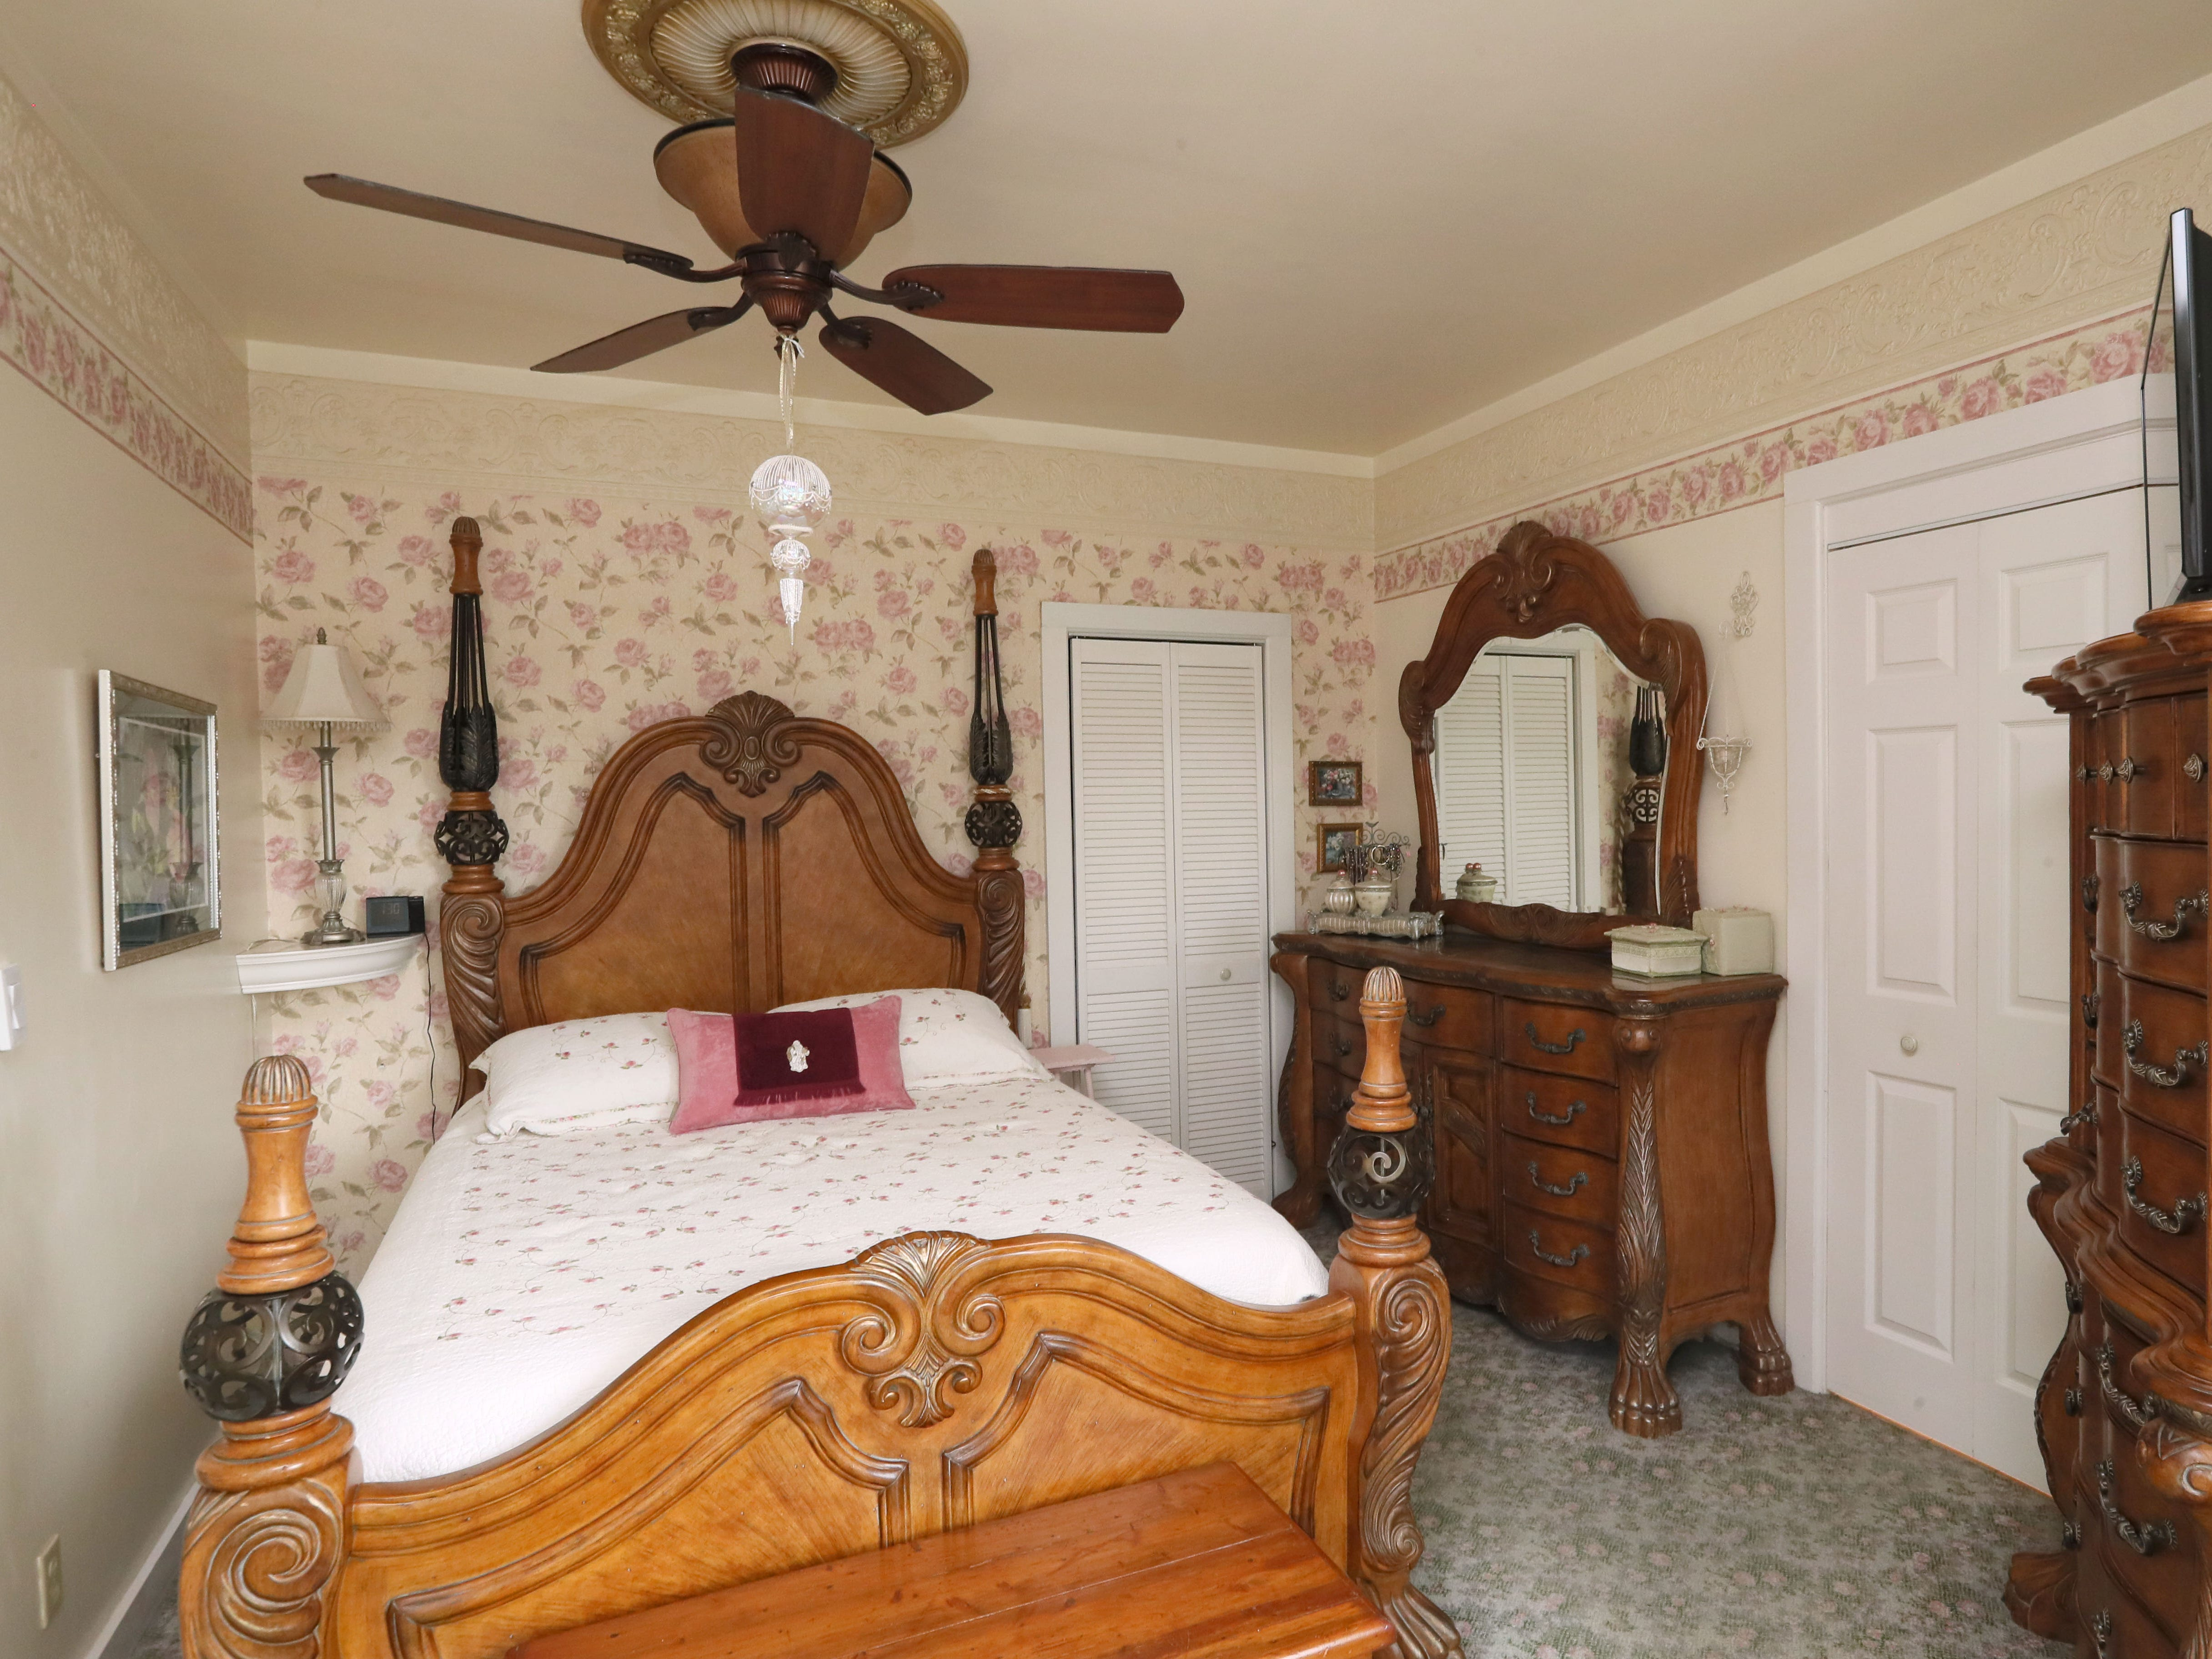 The master bedroom, like many rooms, features wallpaper.